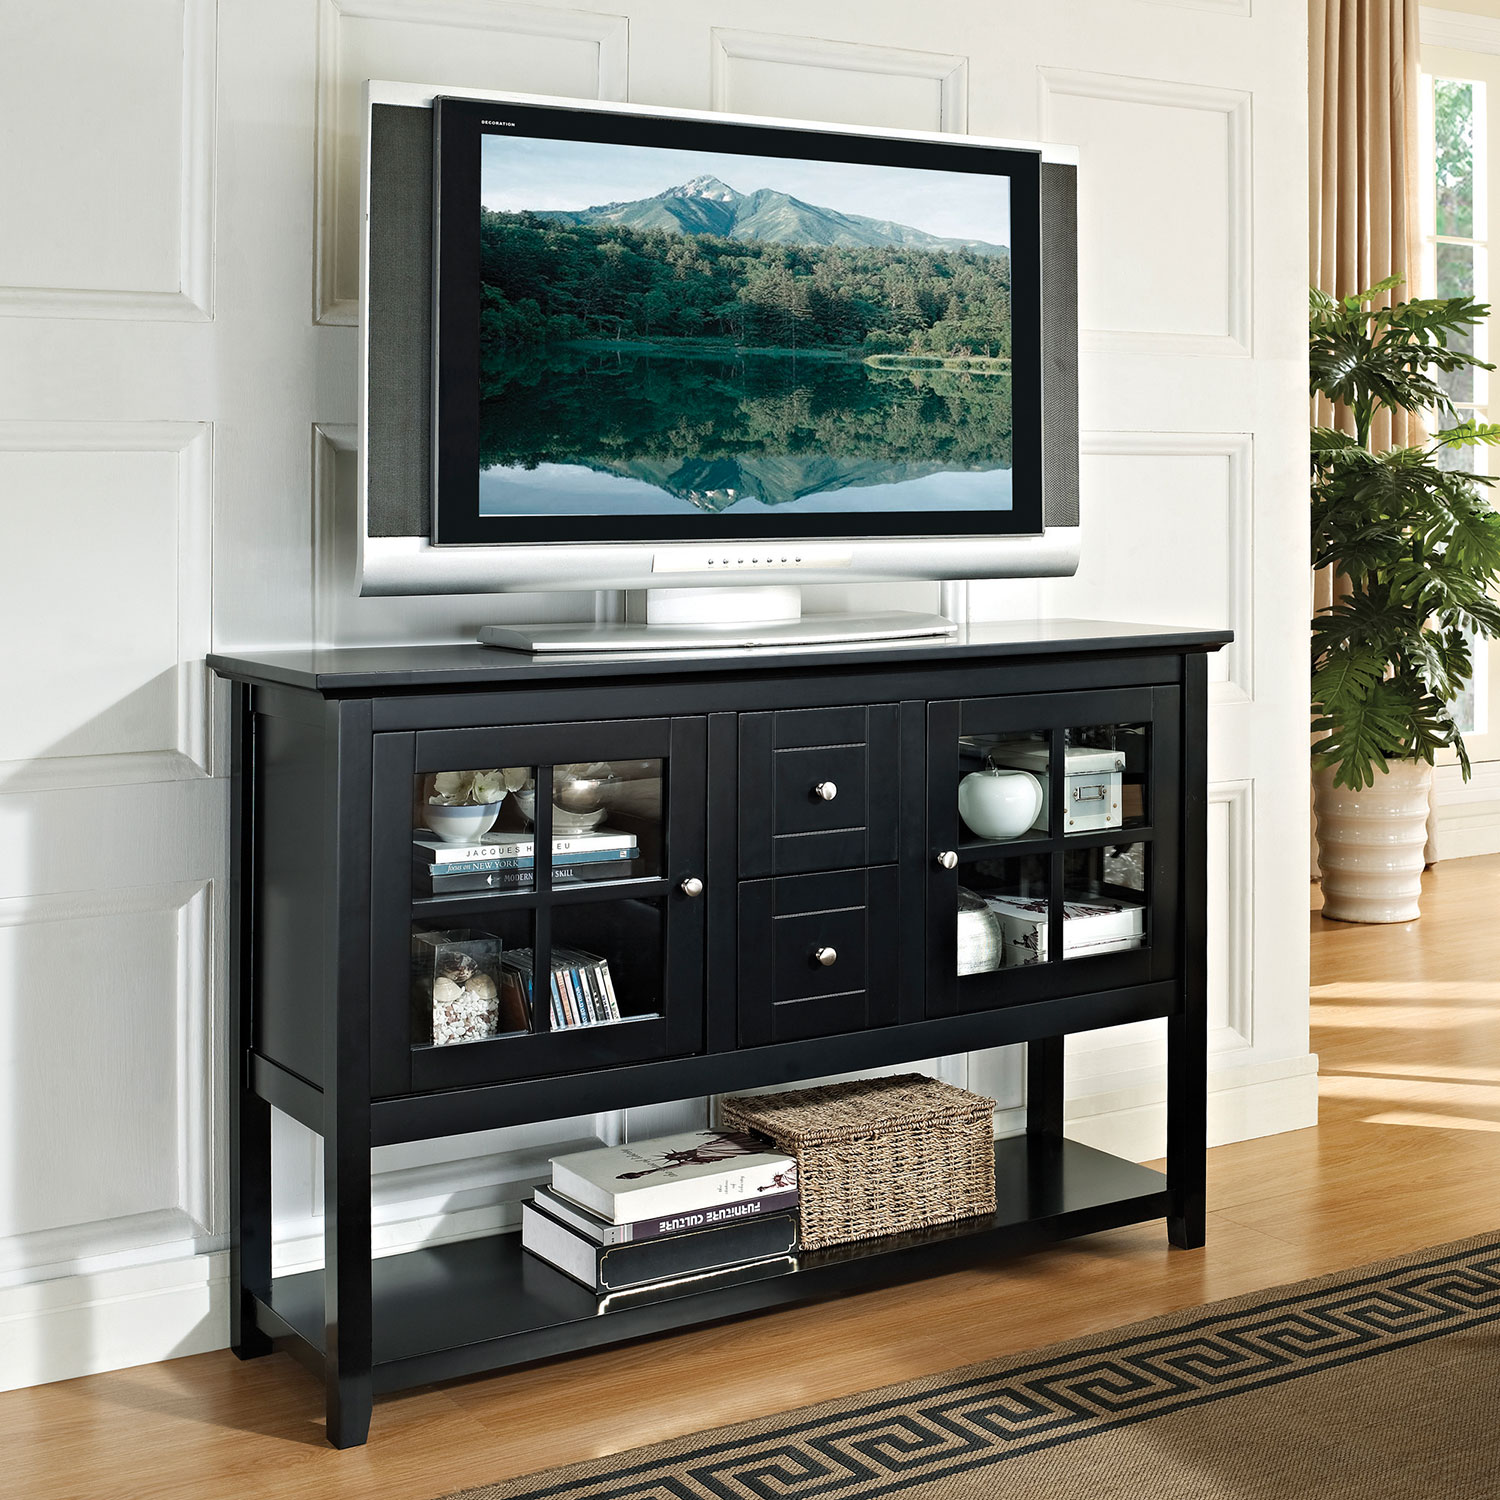 walker edison  console tv stand  black  tv stands  best buy  - walker edison  console tv stand  black  tv stands  best buy canada